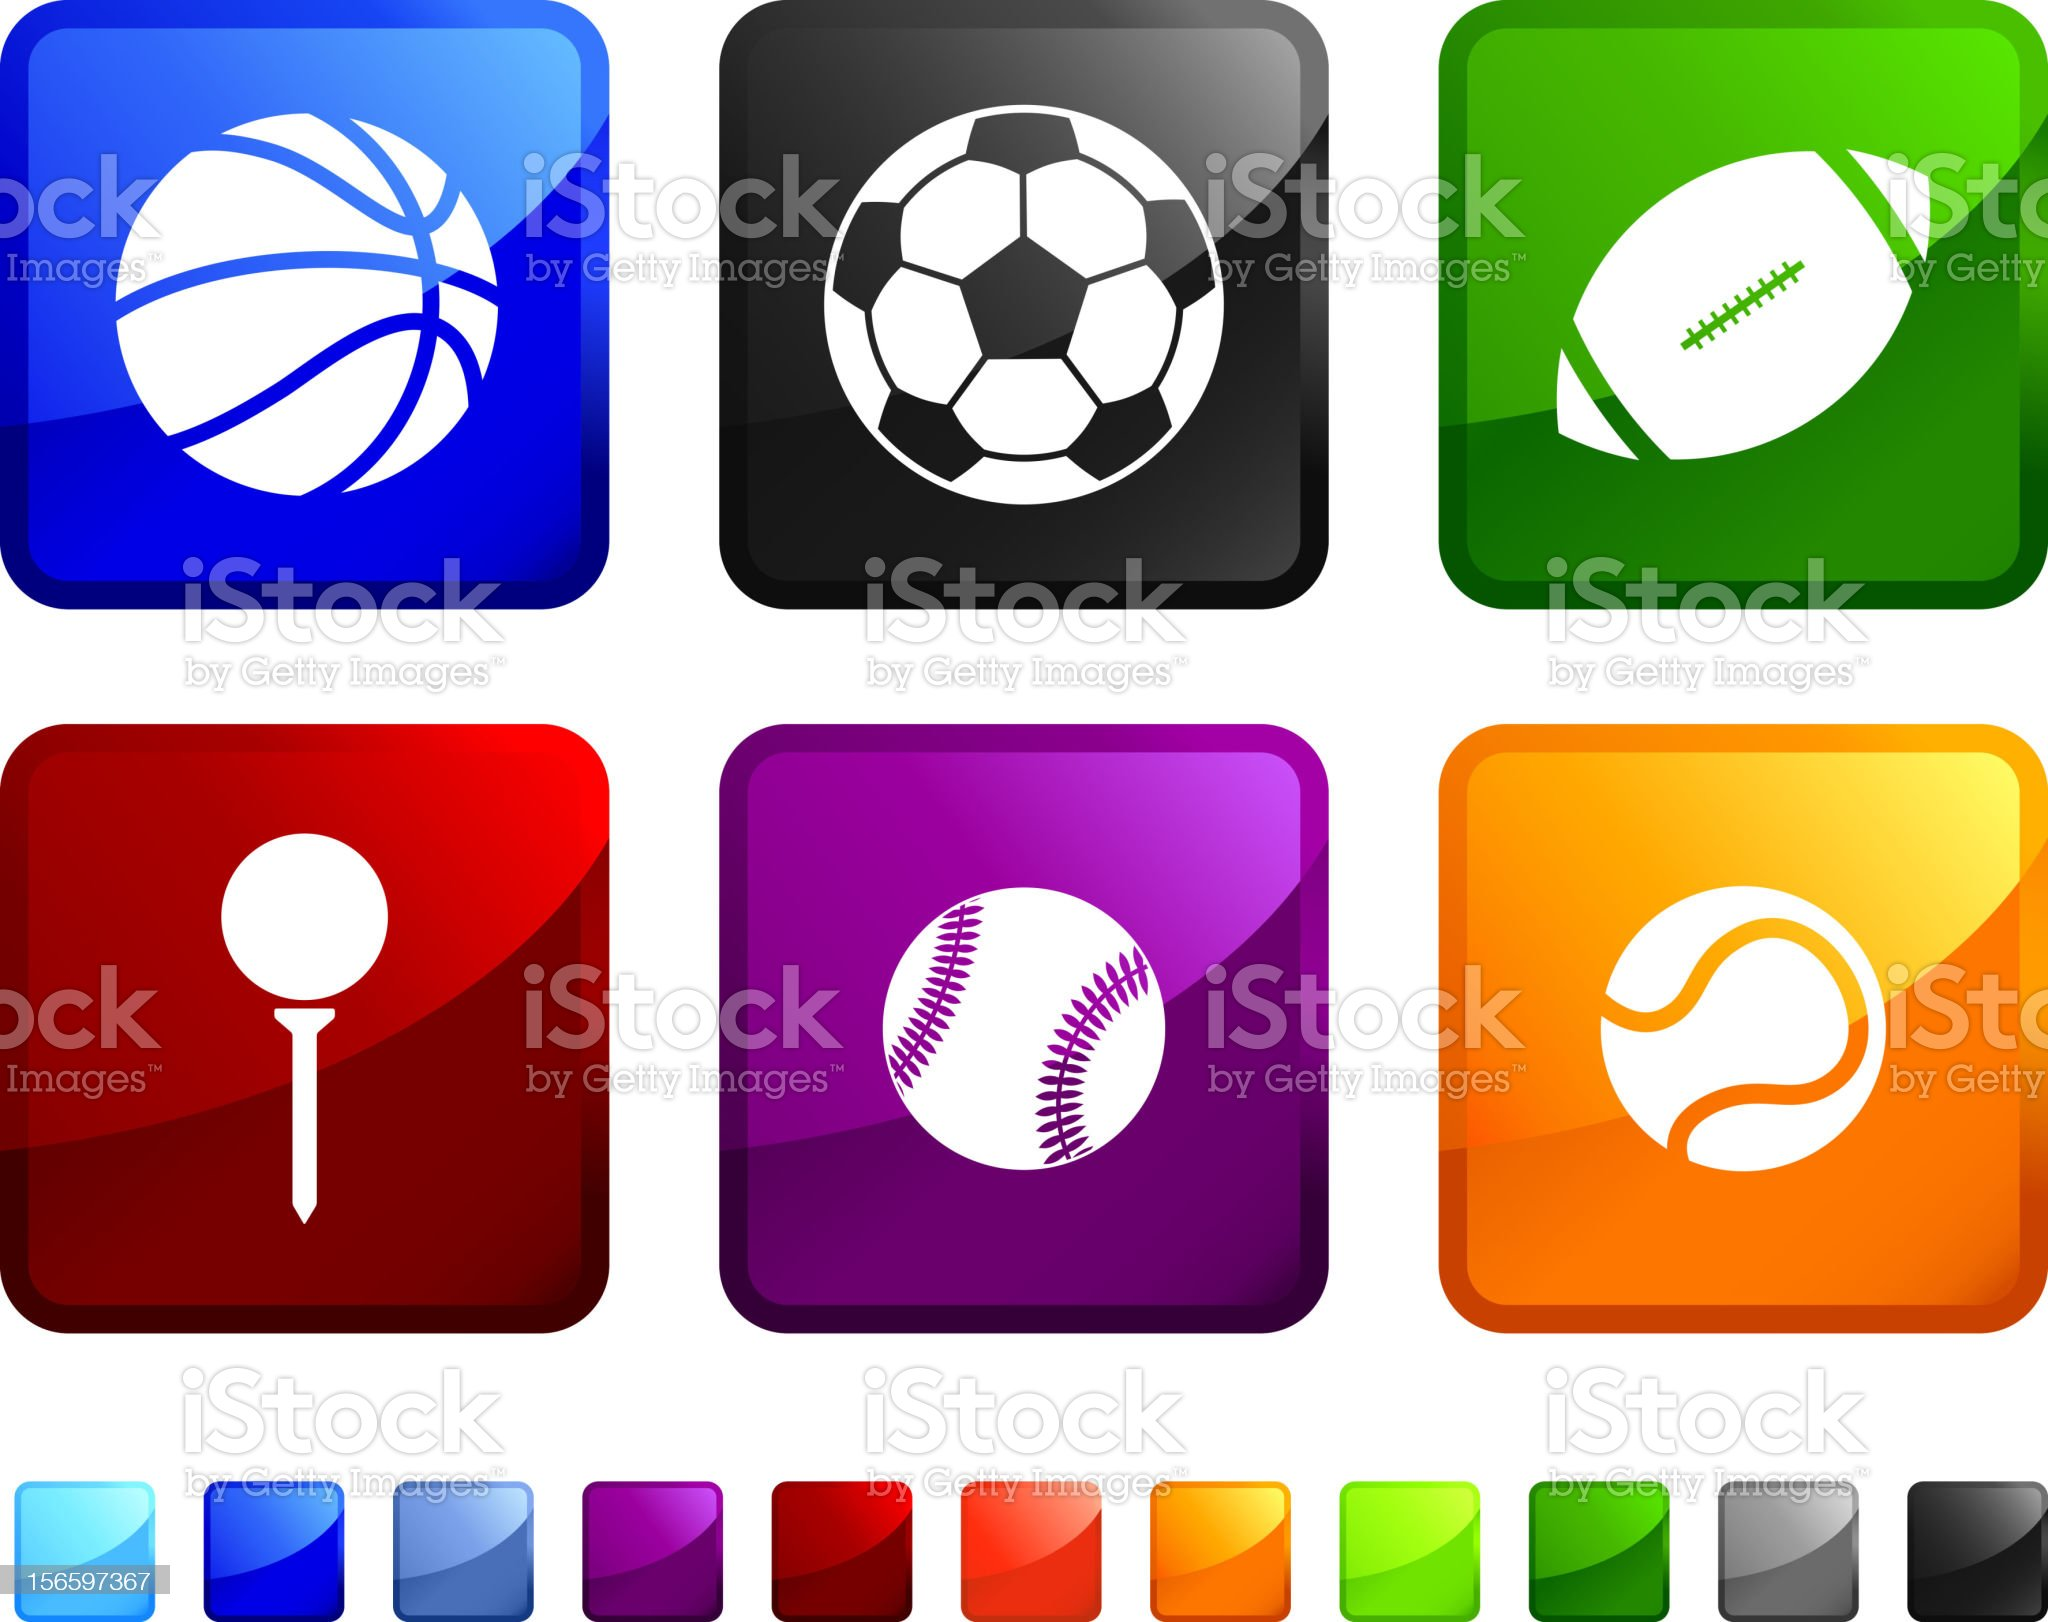 Sports Balls royalty free vector icon set stickers royalty-free stock vector art